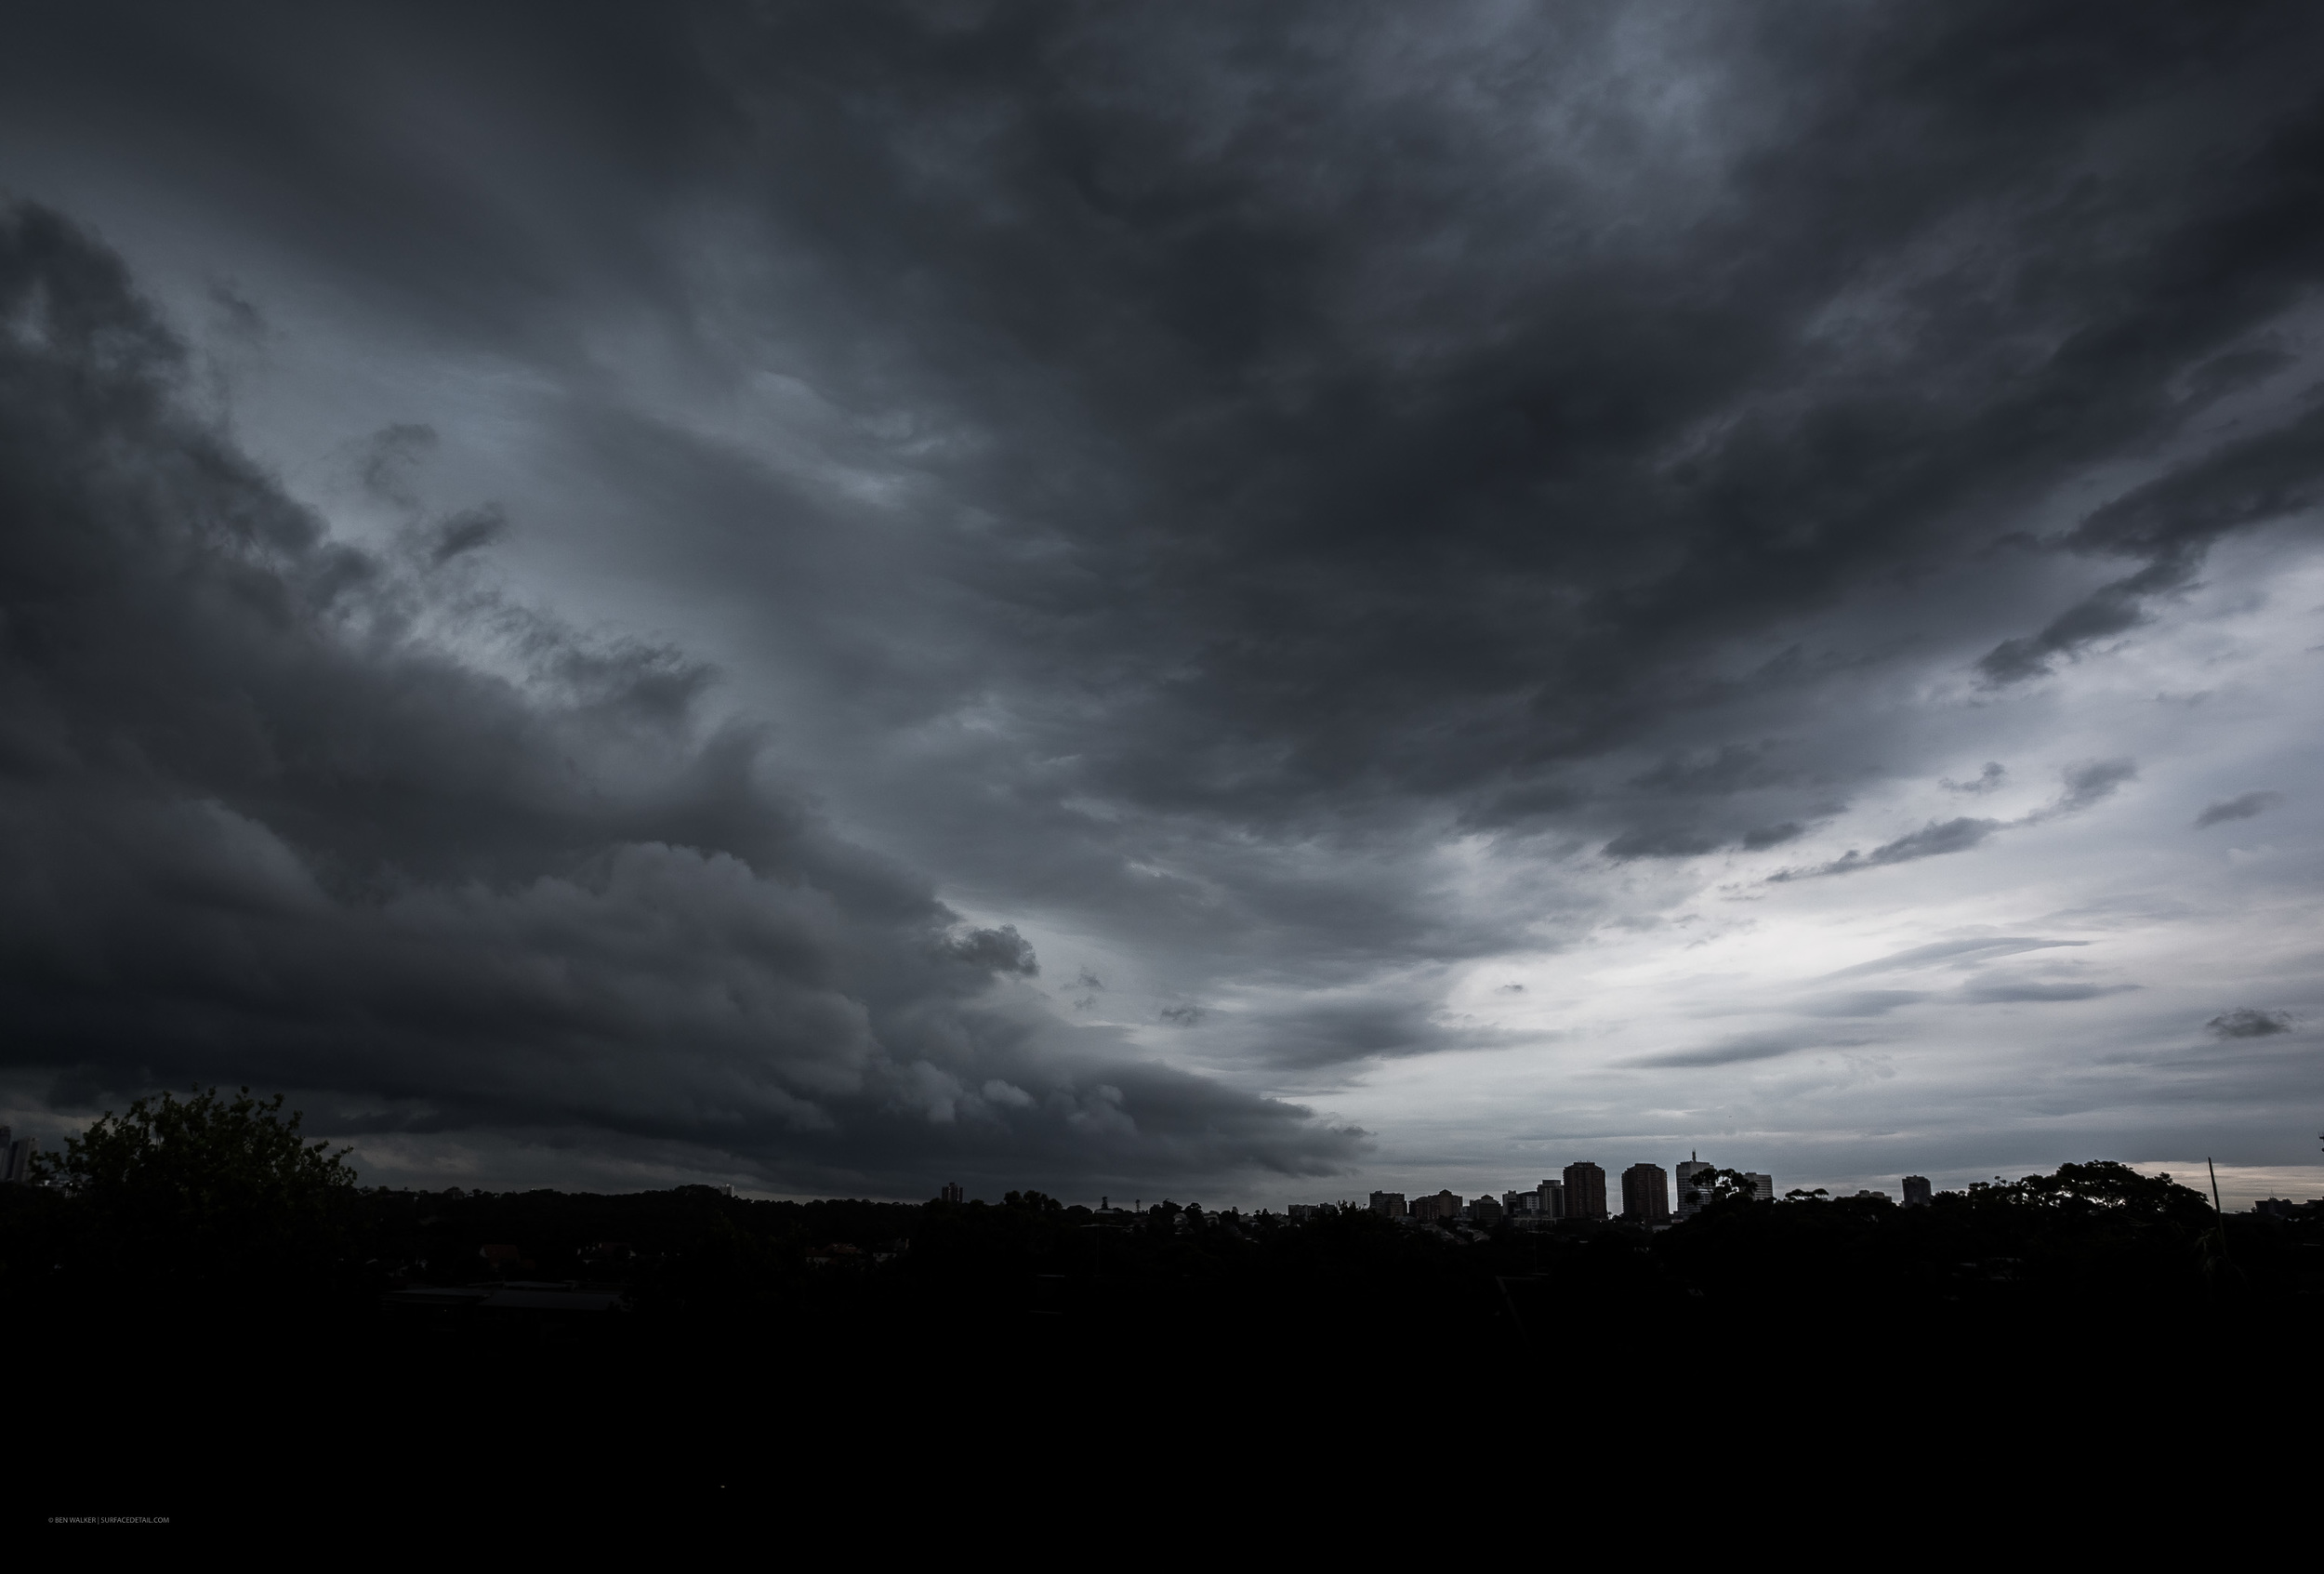 Approaching Storm - 22mm f6.7 1/125